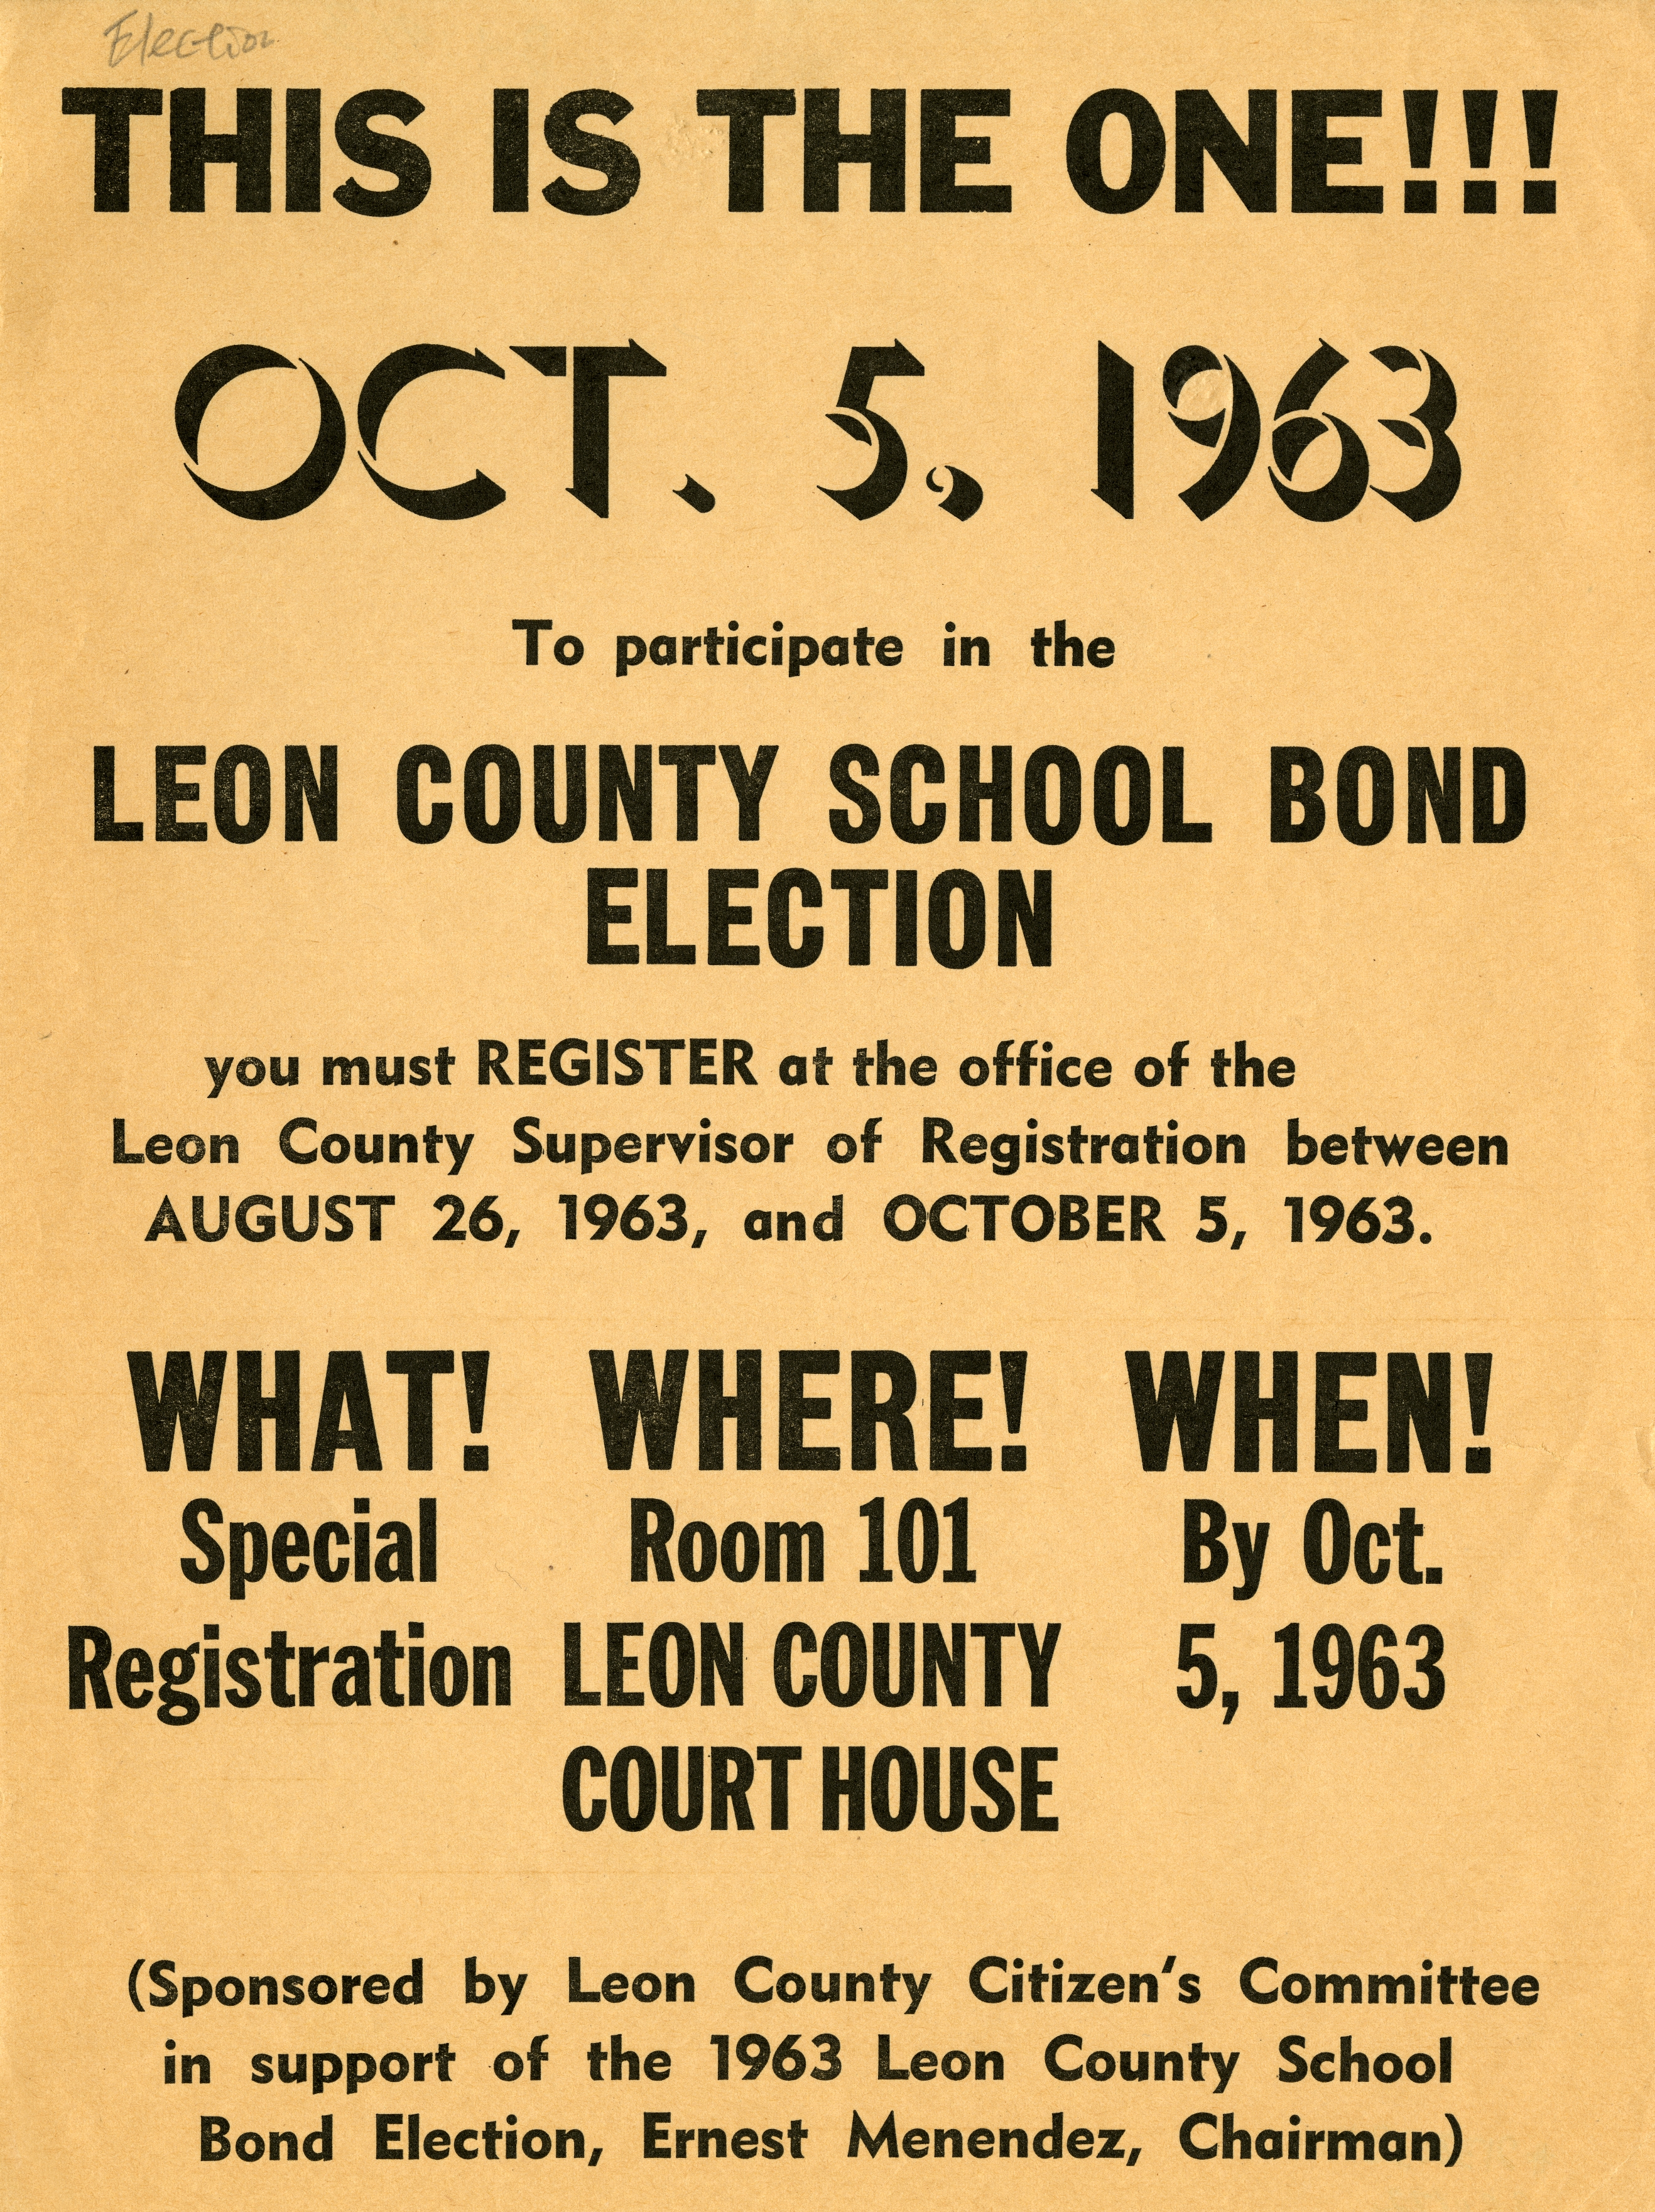 This is the one ... Leon County school bond election.